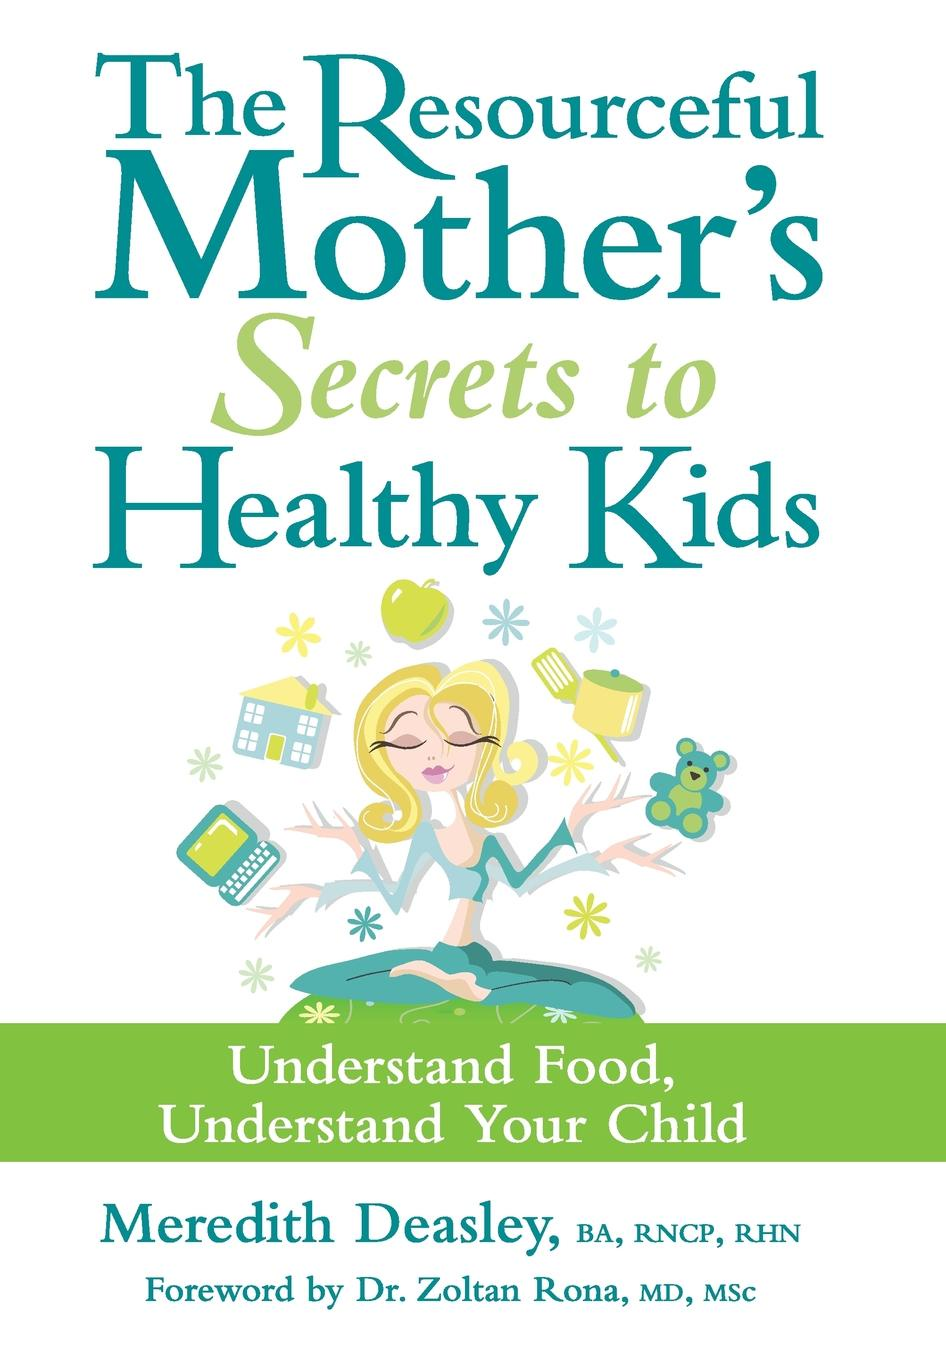 Фото - Meredith Deasley BA RNCP RHN ACC The Resourceful Mother's Secrets to Healthy Kids. Understand Food, Understand Your Child mother and child